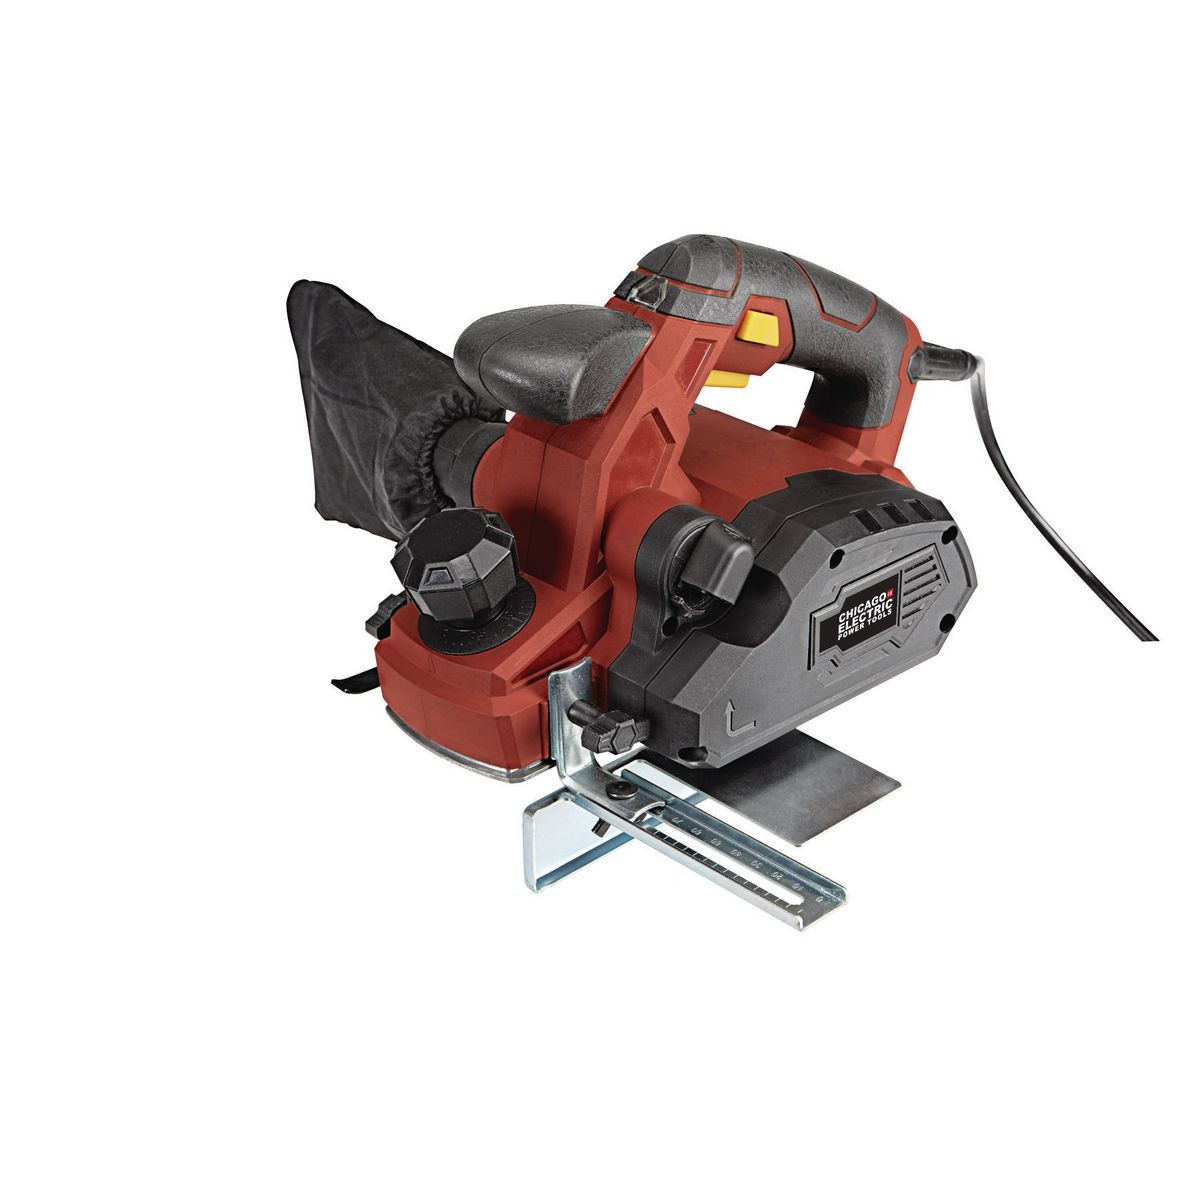 Are Chicago Electric Tools Any Good